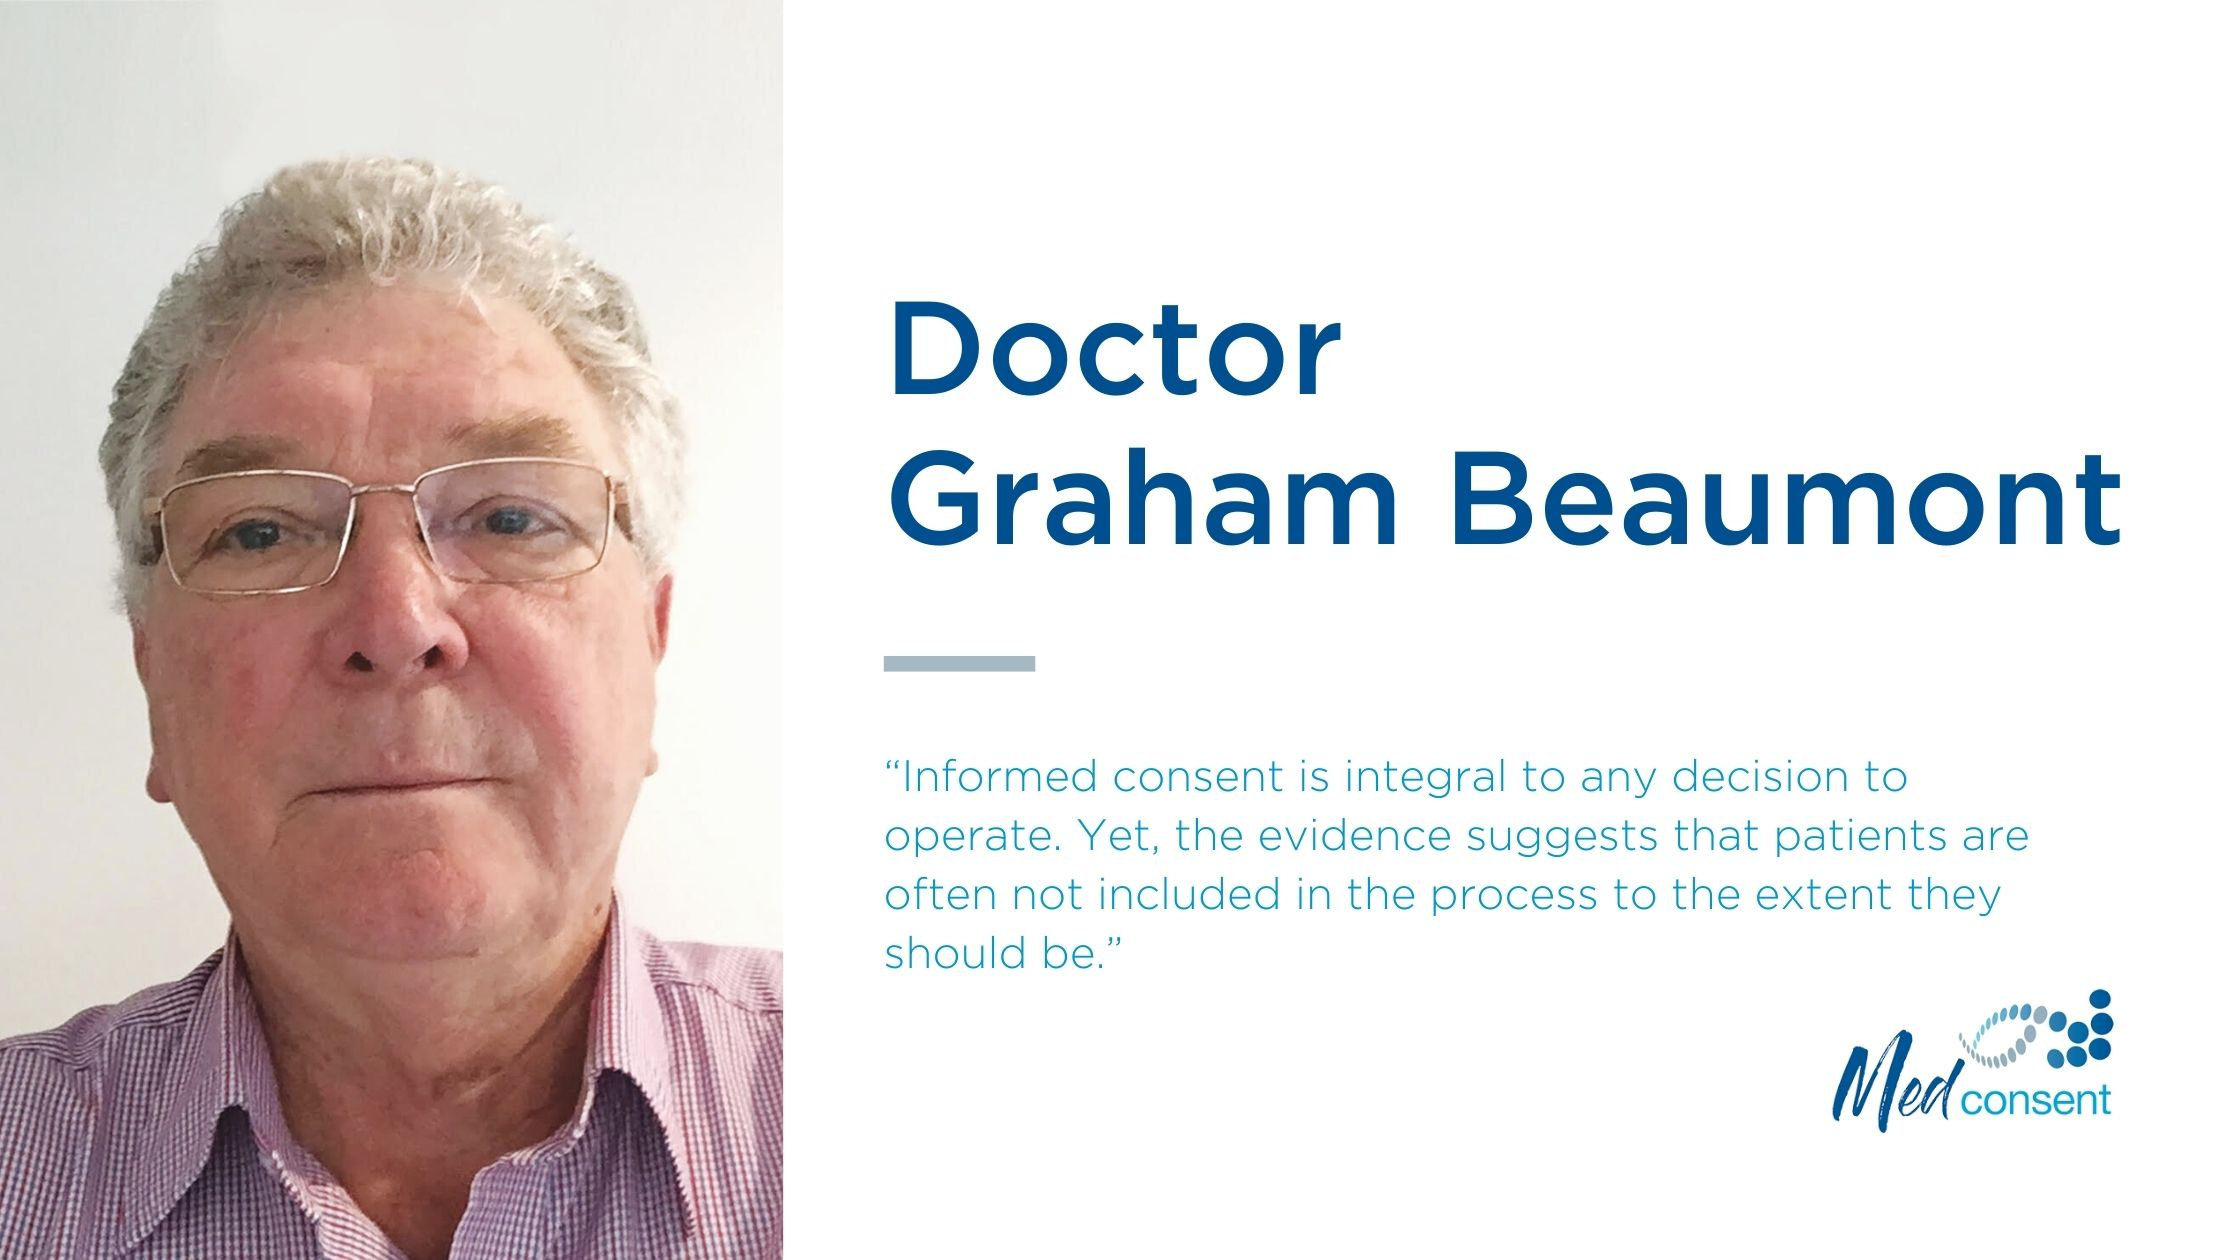 Dr Graham Beaumont explains how to gain informed patient consent to minimise risk